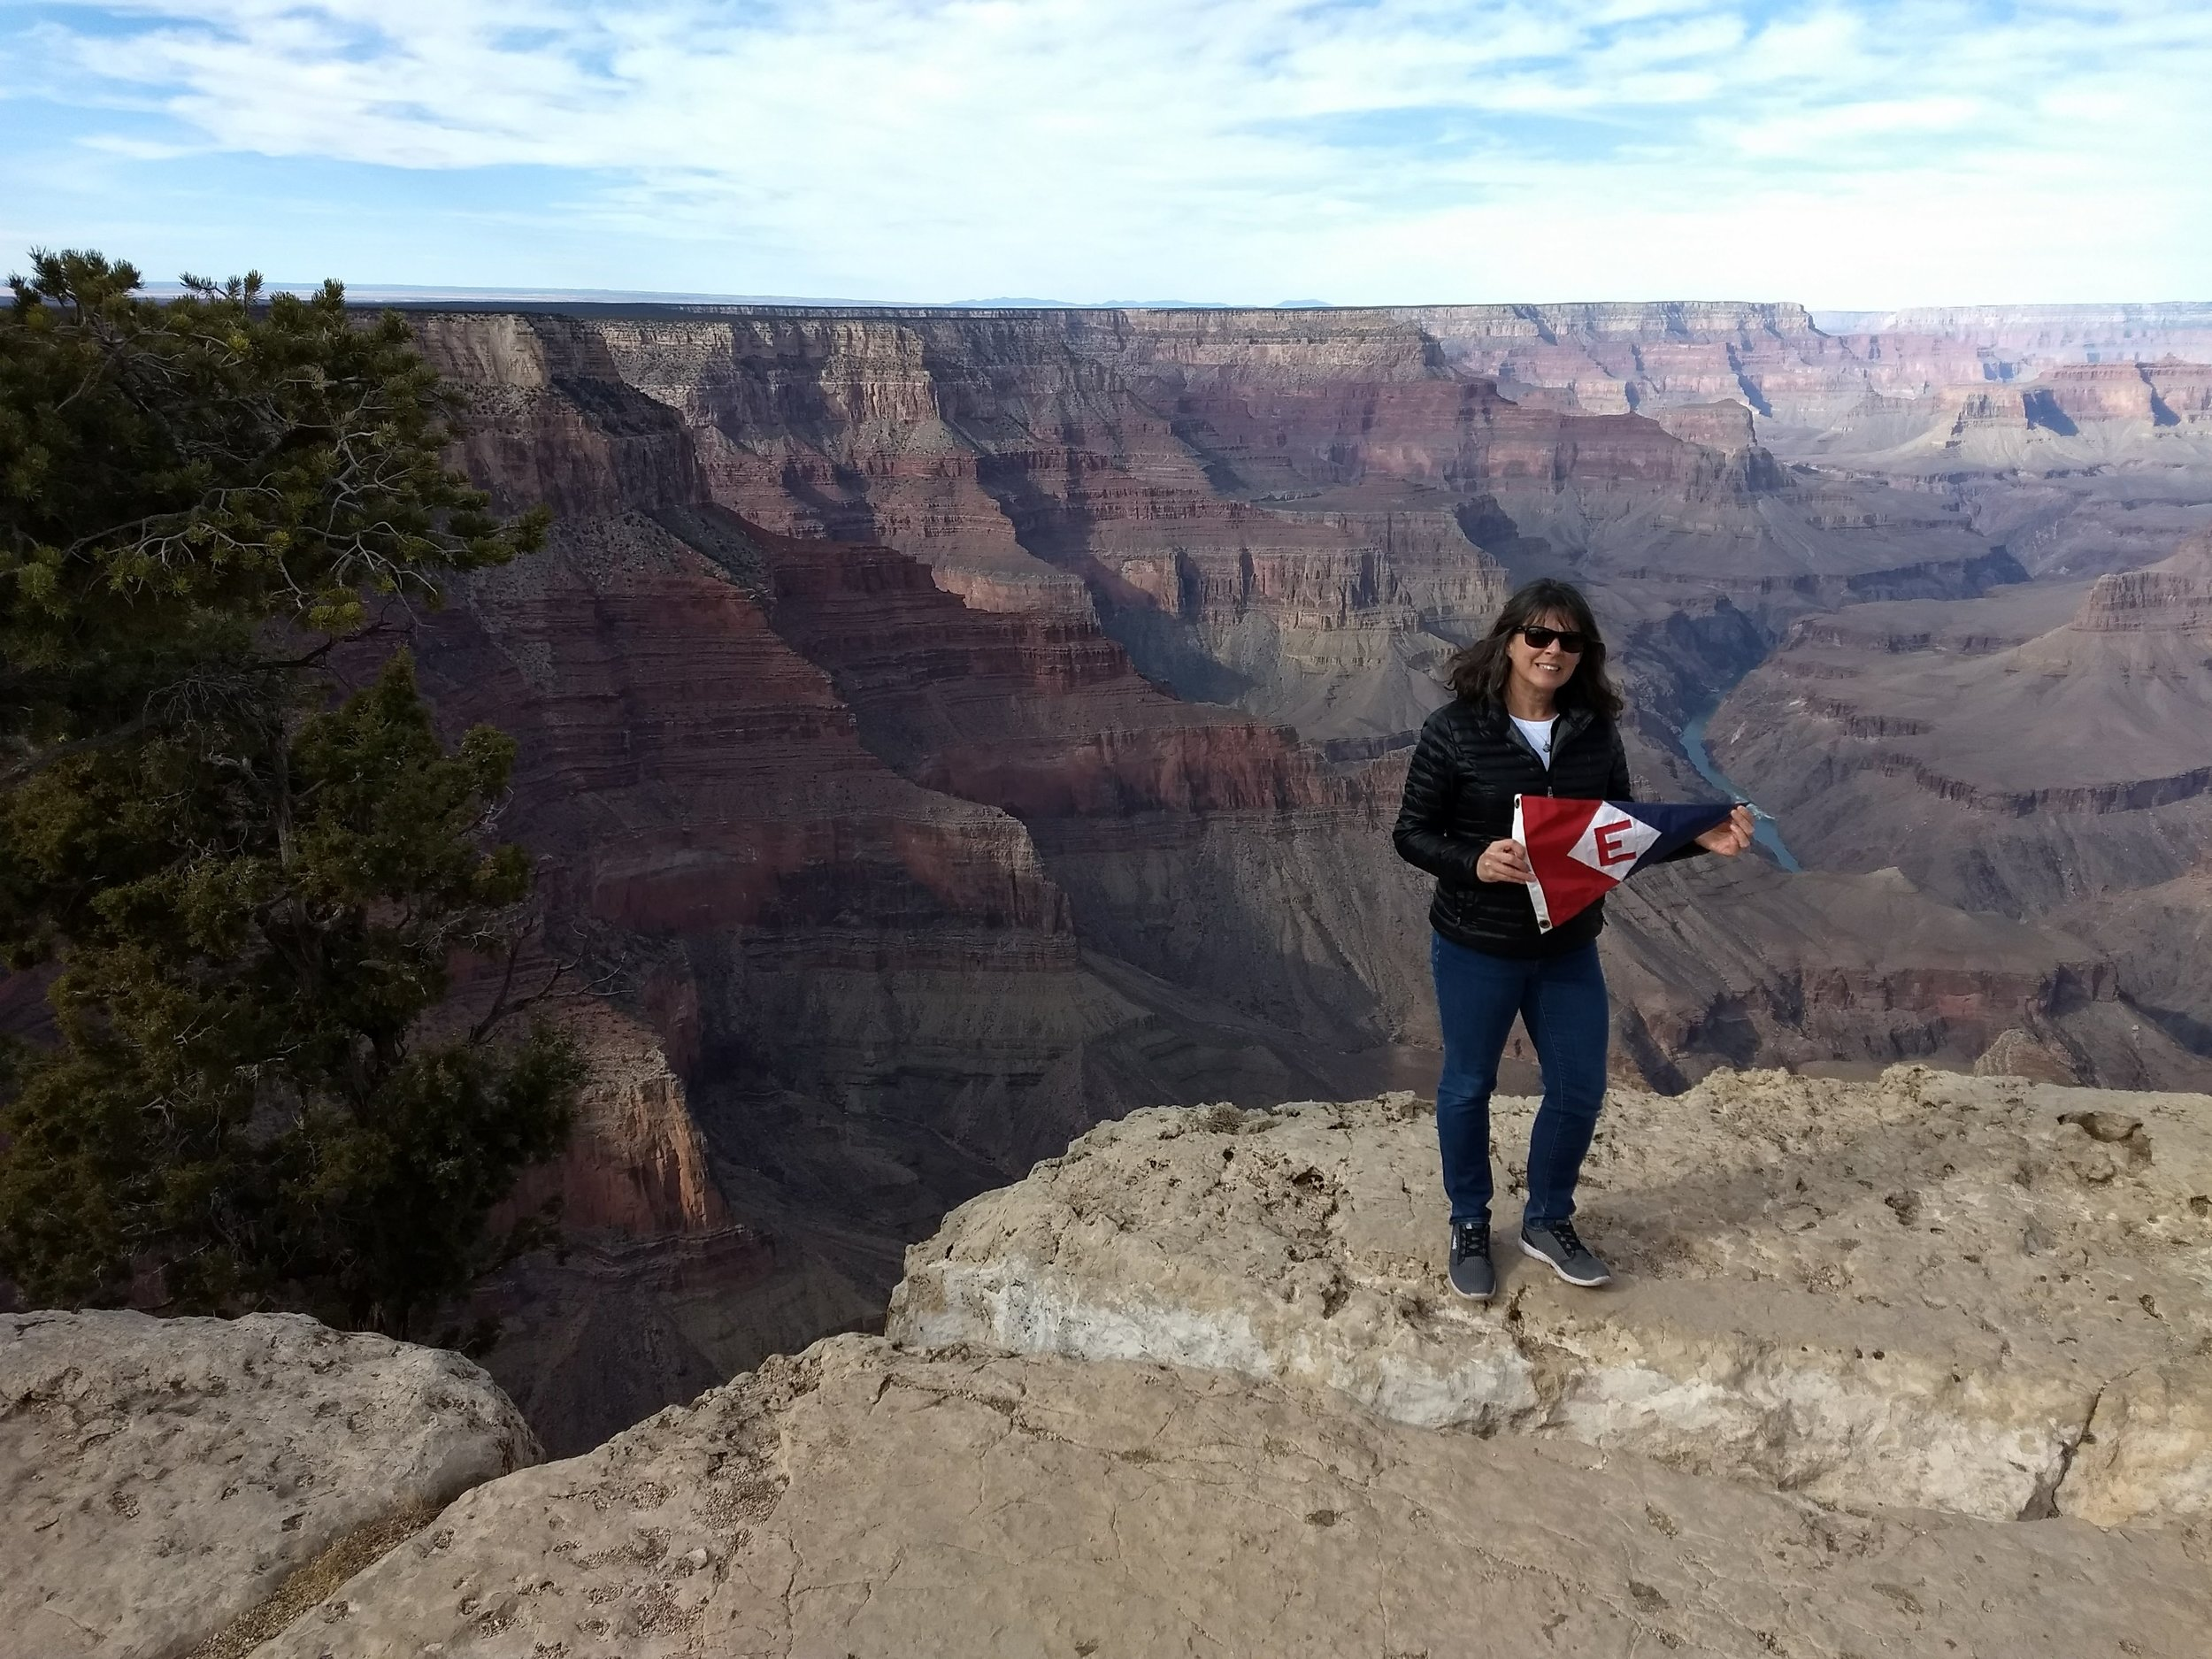 Karen Nousen proudly showing the EYC colors at the Grand Canyon